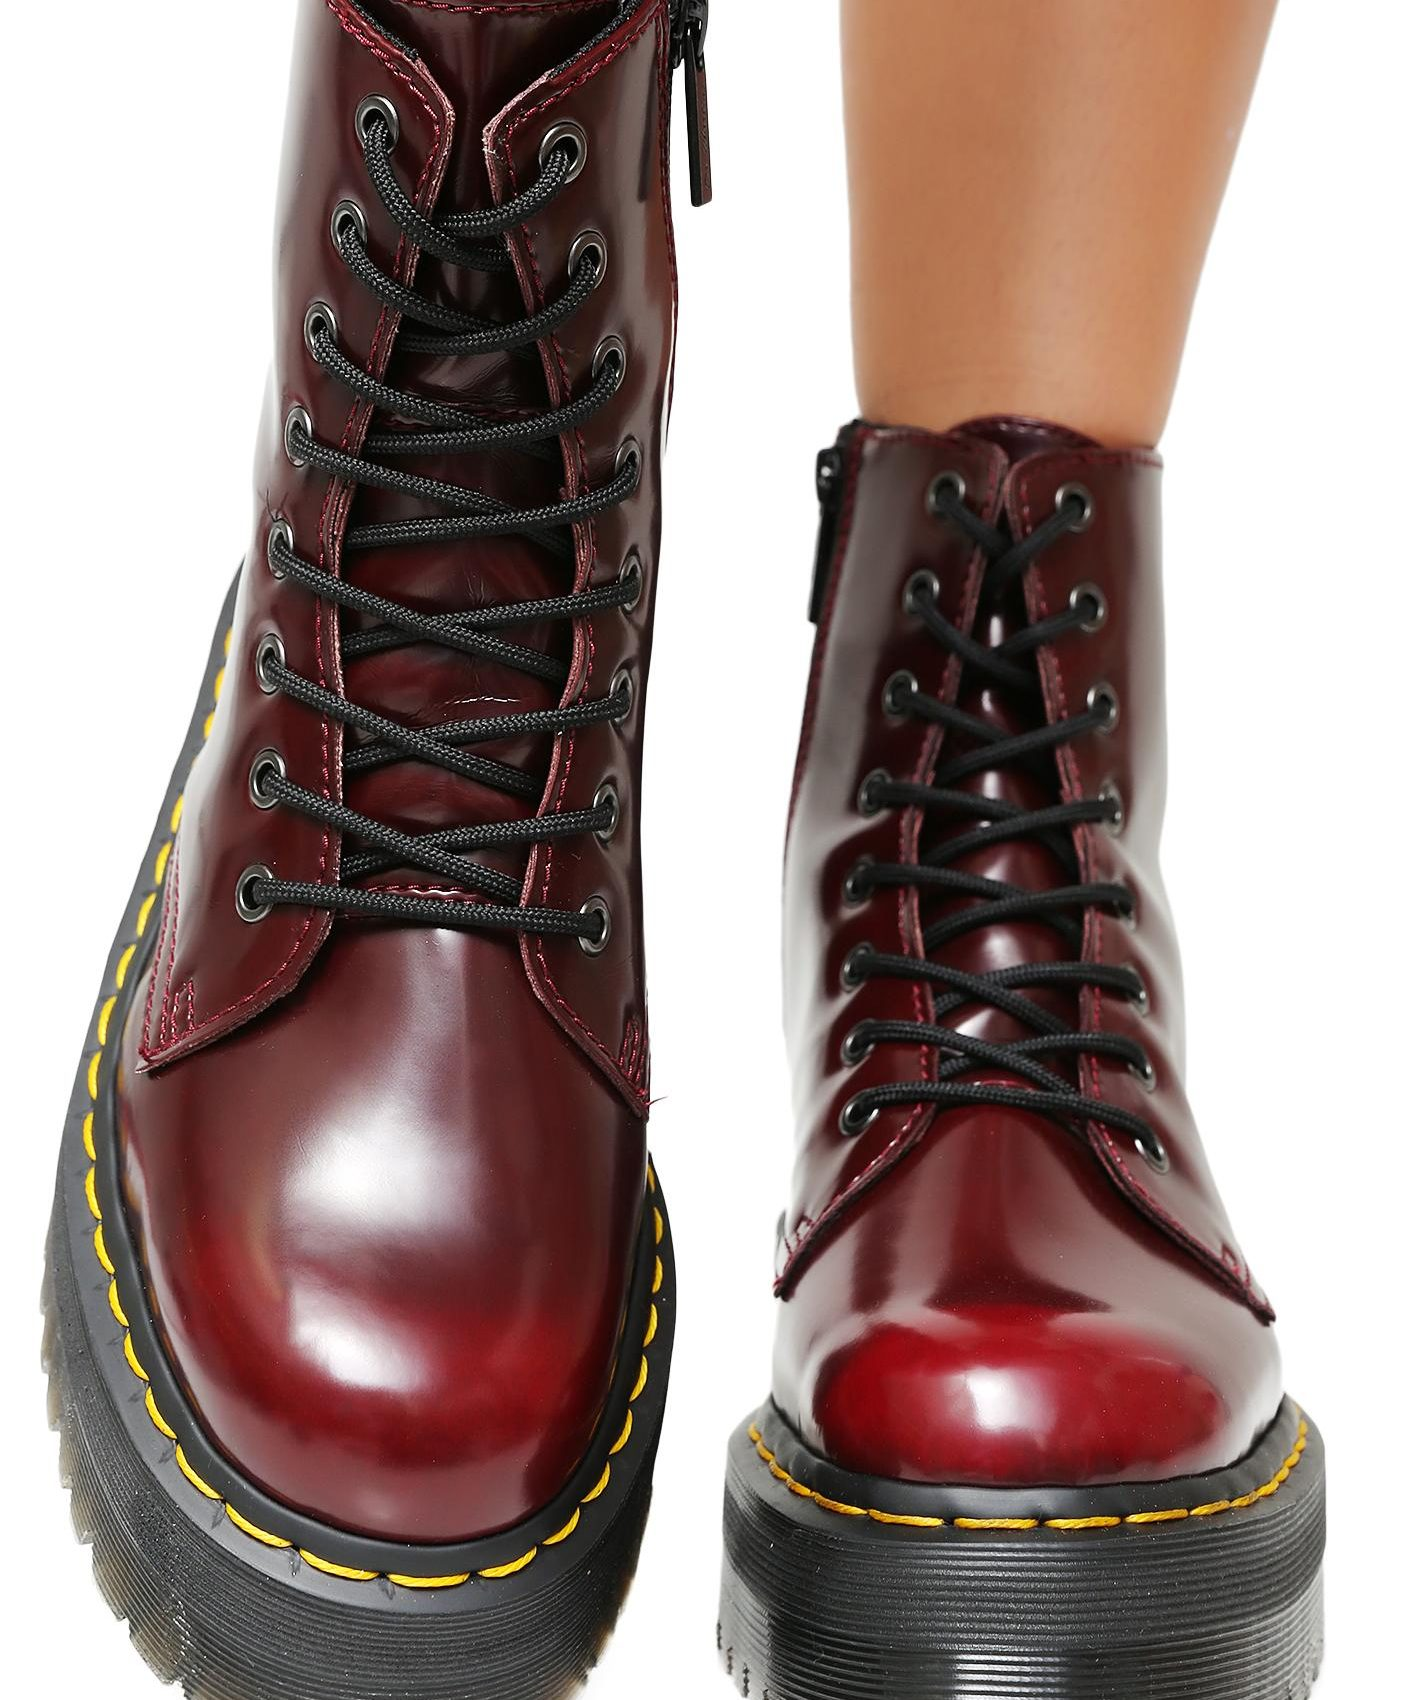 1460 CHERRY RED SMOOTH DR. MARTENS SOMECHIC